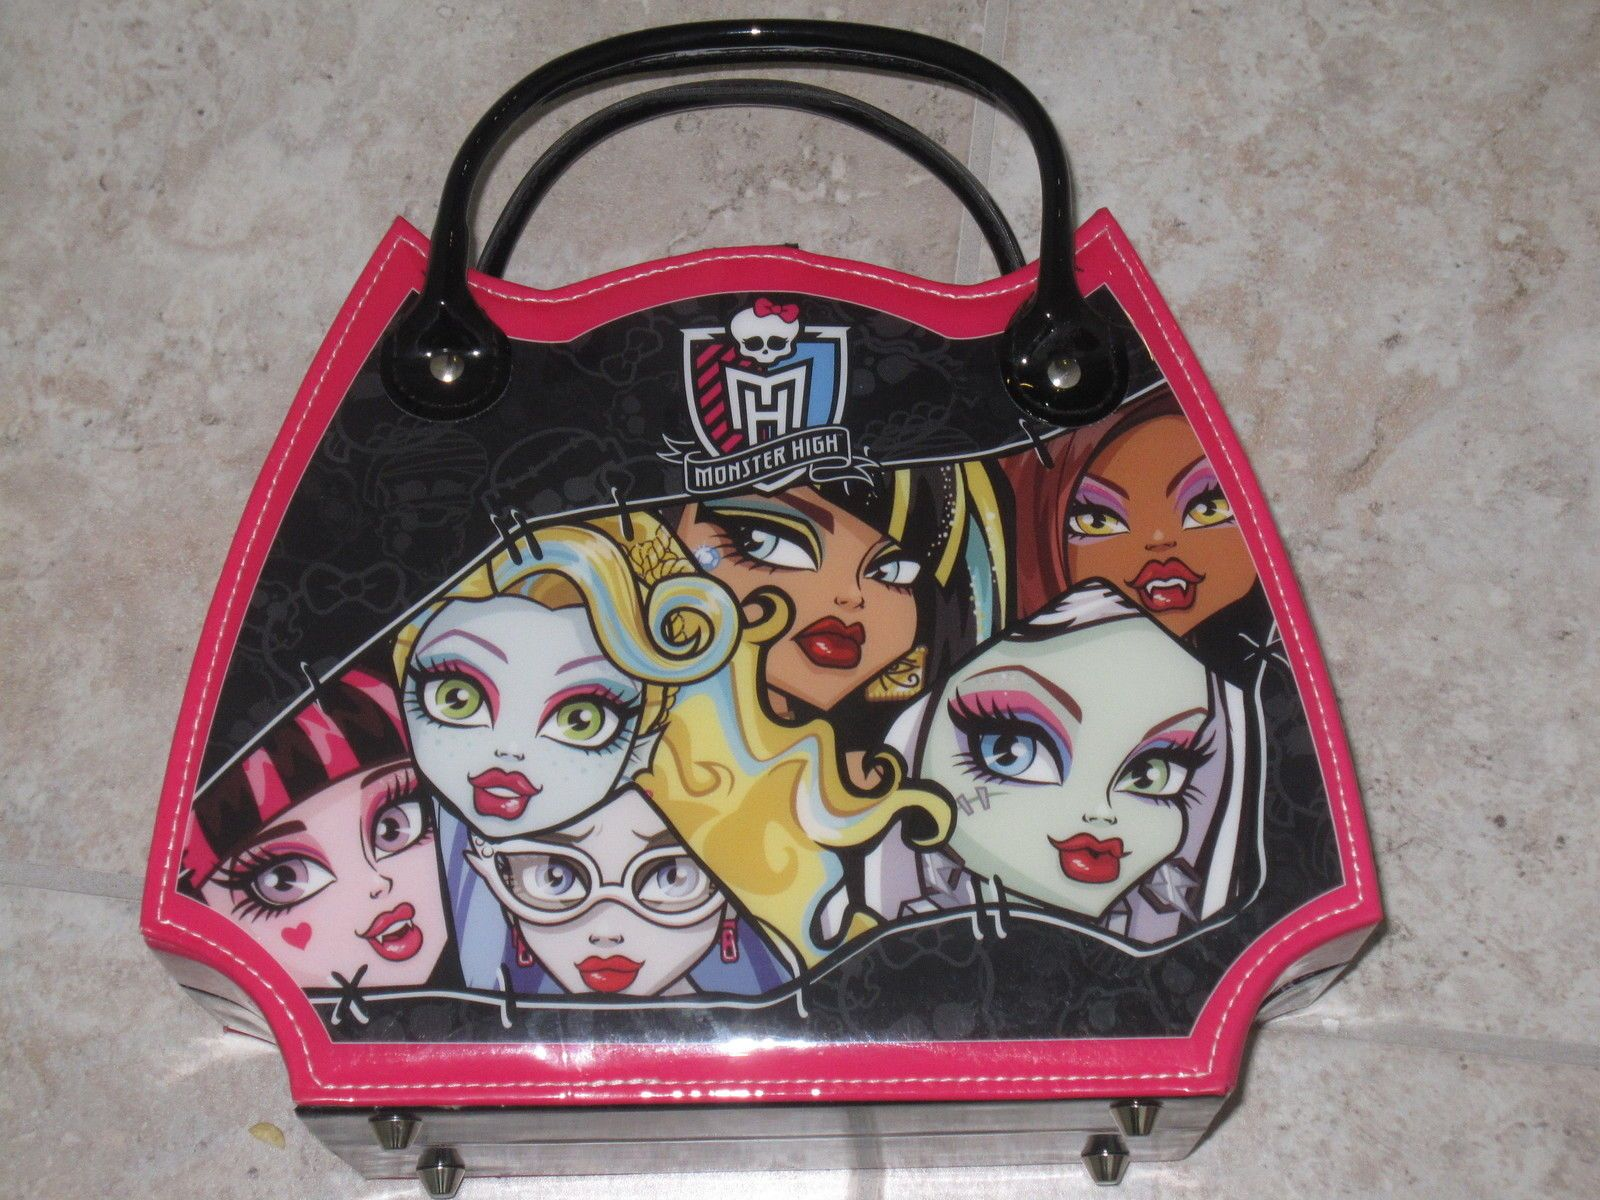 monster high toys | New Monster High Toy Makeup Kit Scary Stylin Set Case Girls Dress Up ...